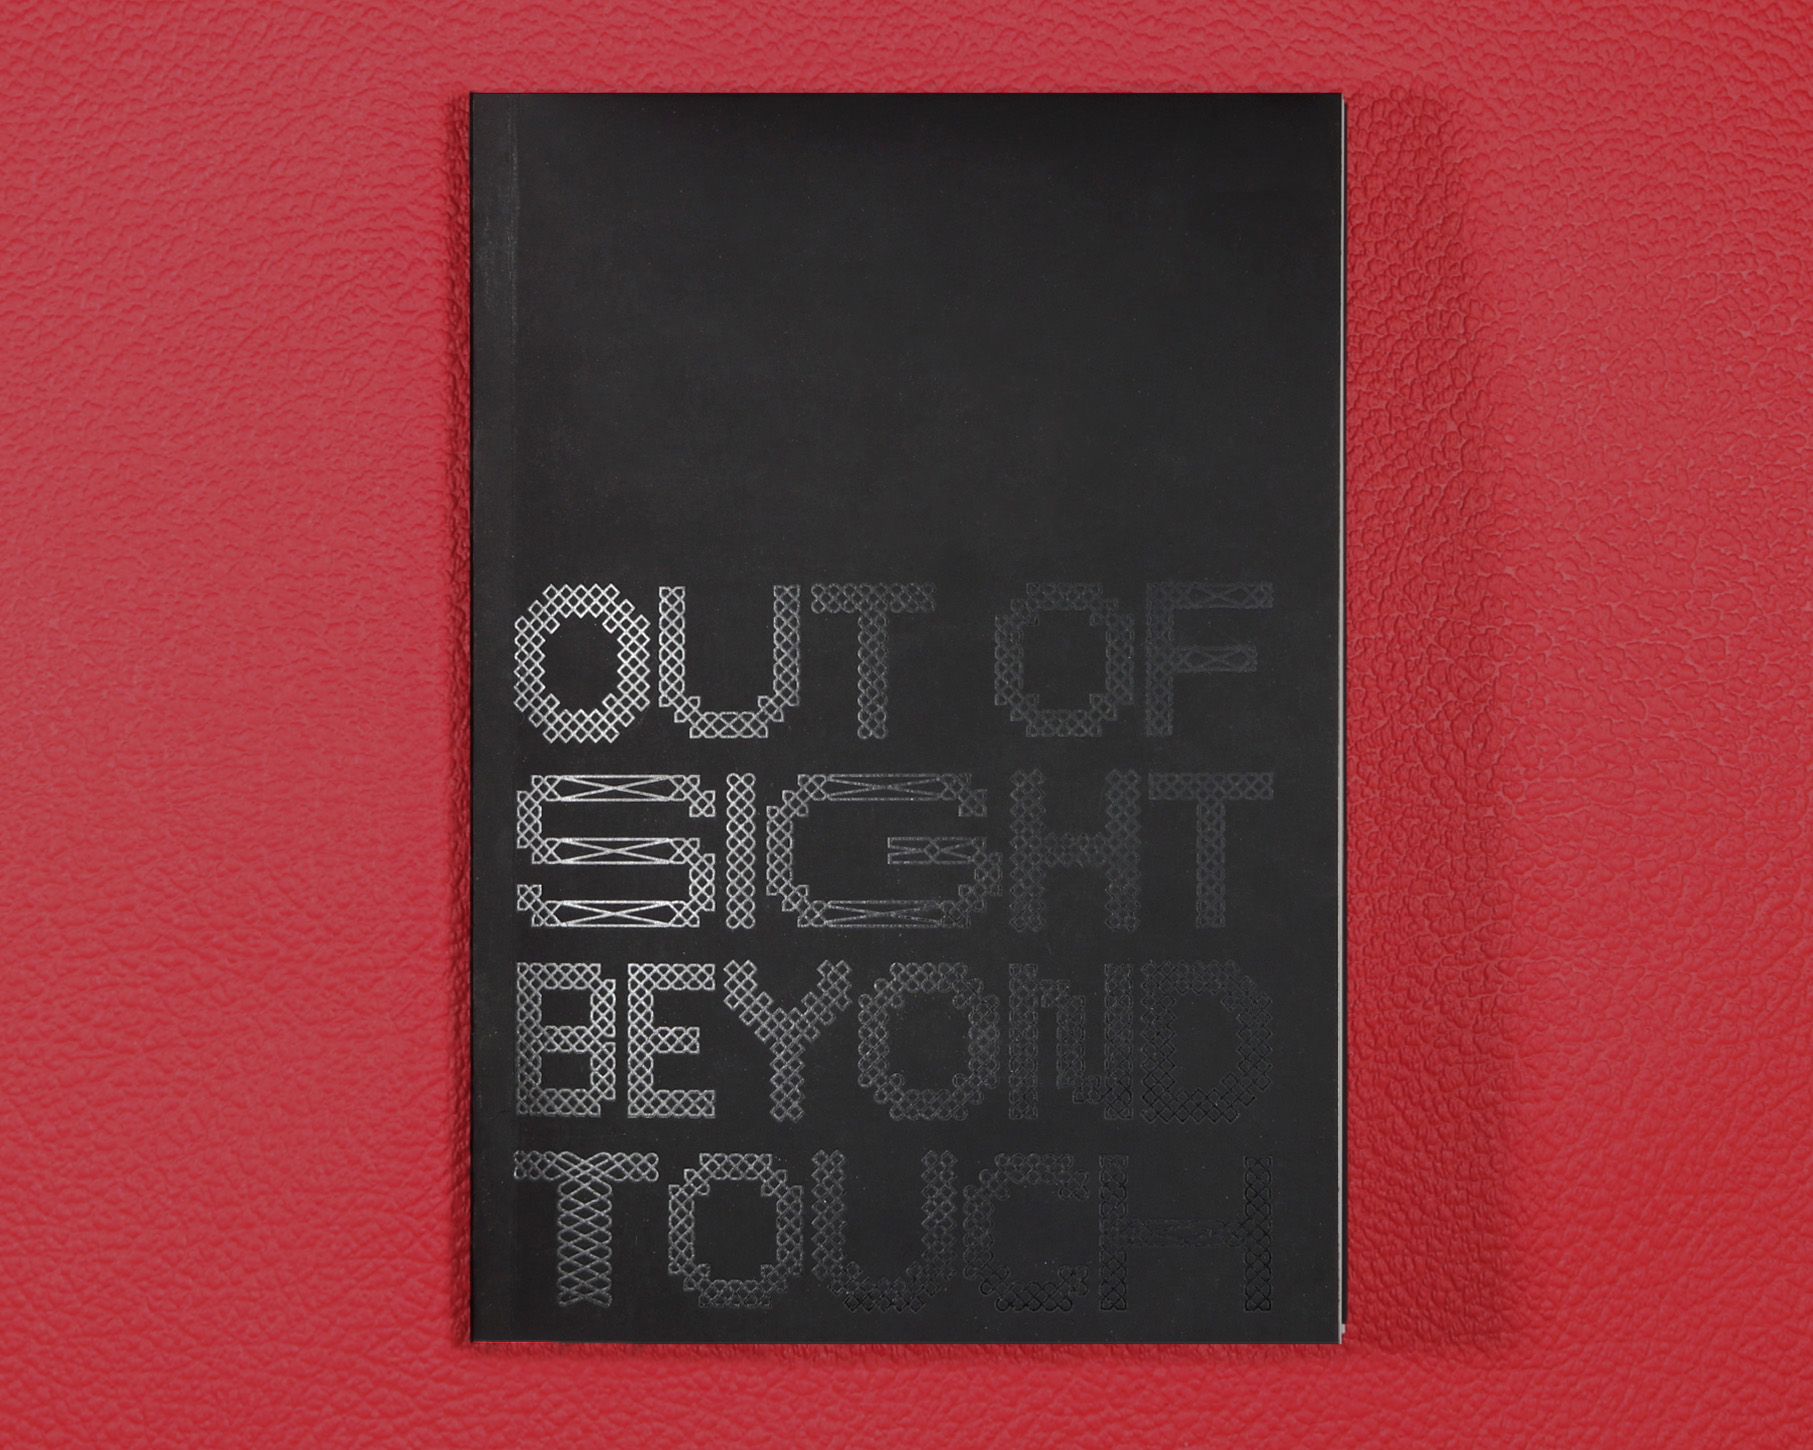 black book cover with black text in english